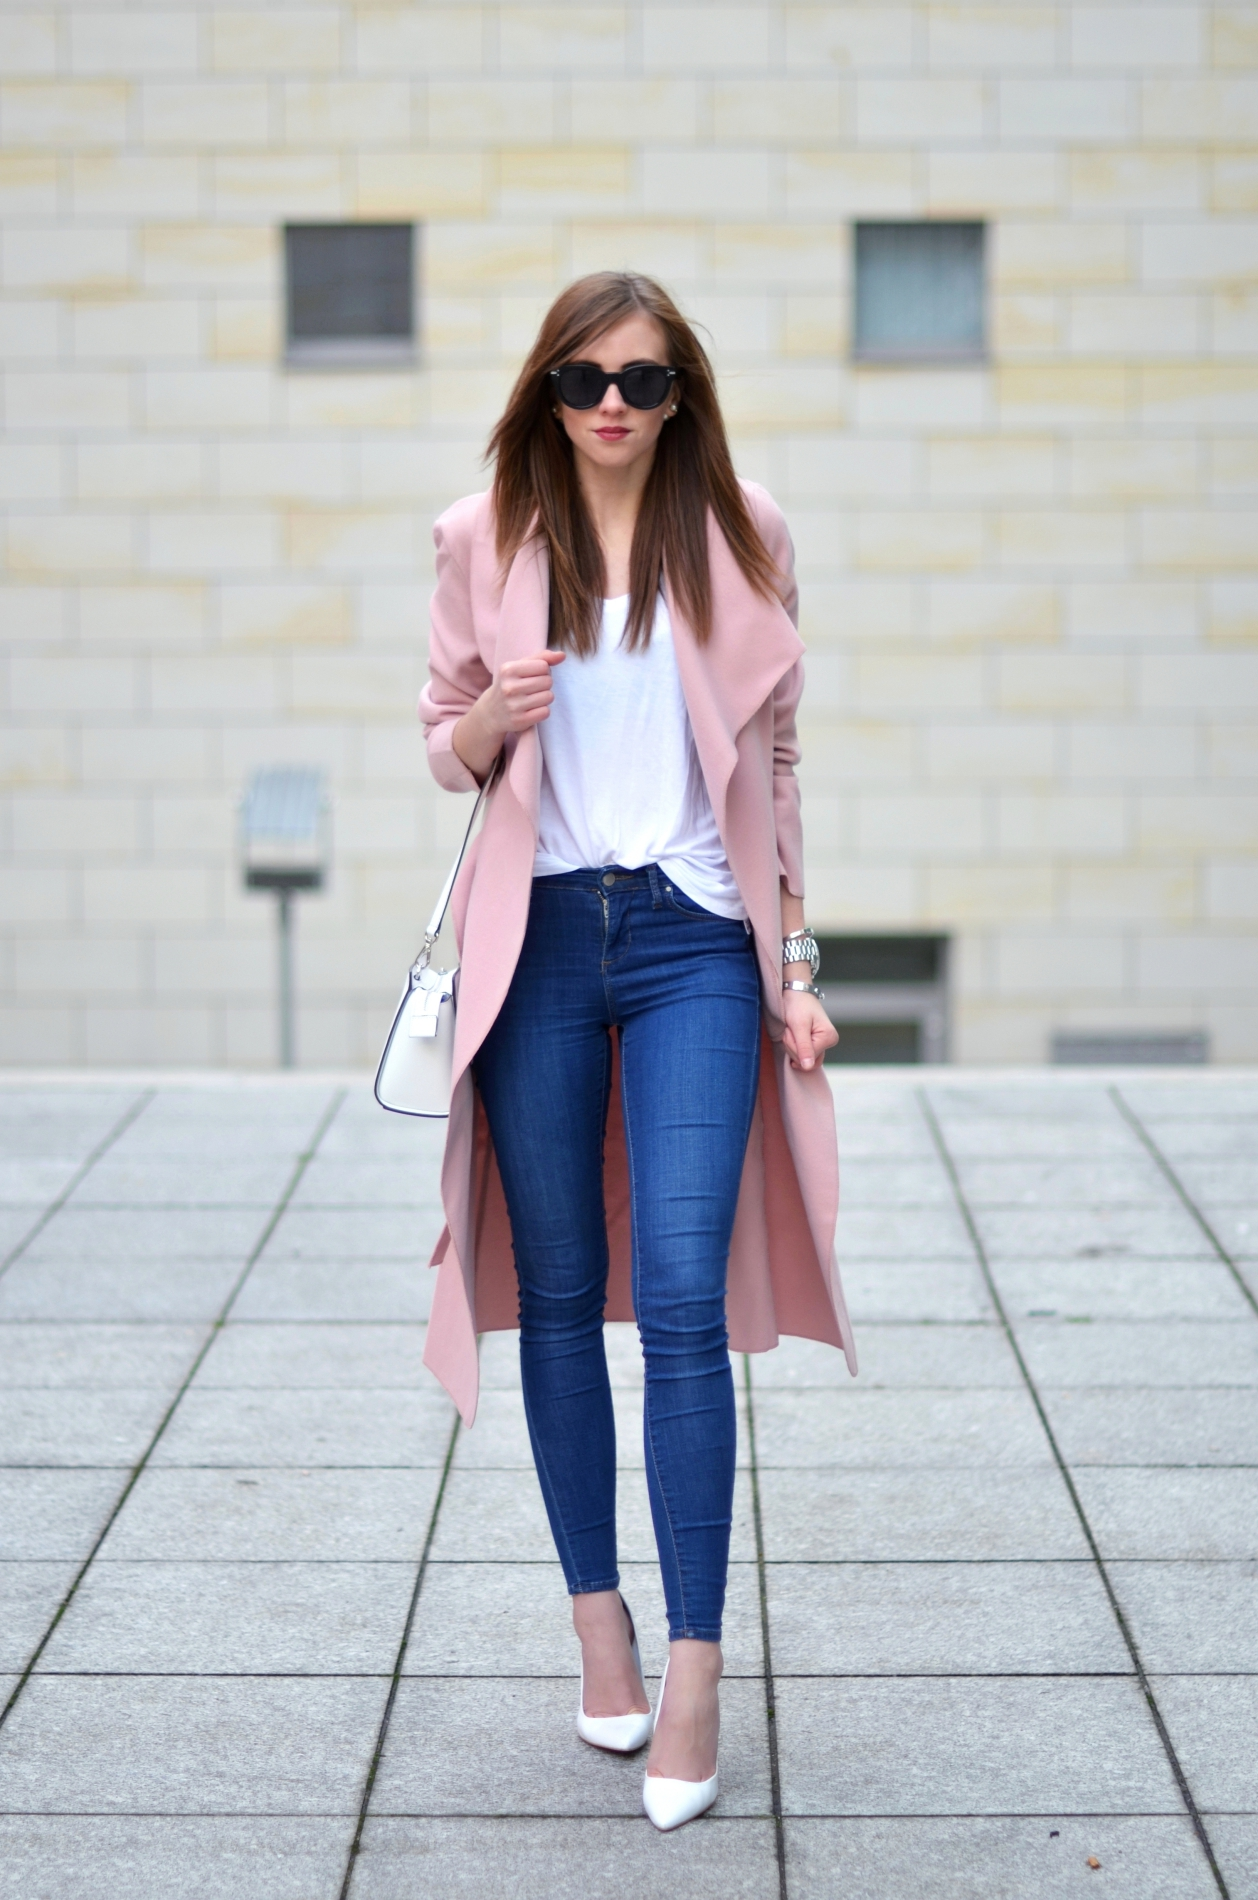 This is how pastels should be worn in winter. Via Barbora Ondrackova Shirt: Acne, Jeans/Shoes: Topshop, Coat: Missguided, Bag: Michael Kors, Sunglasses: Celine